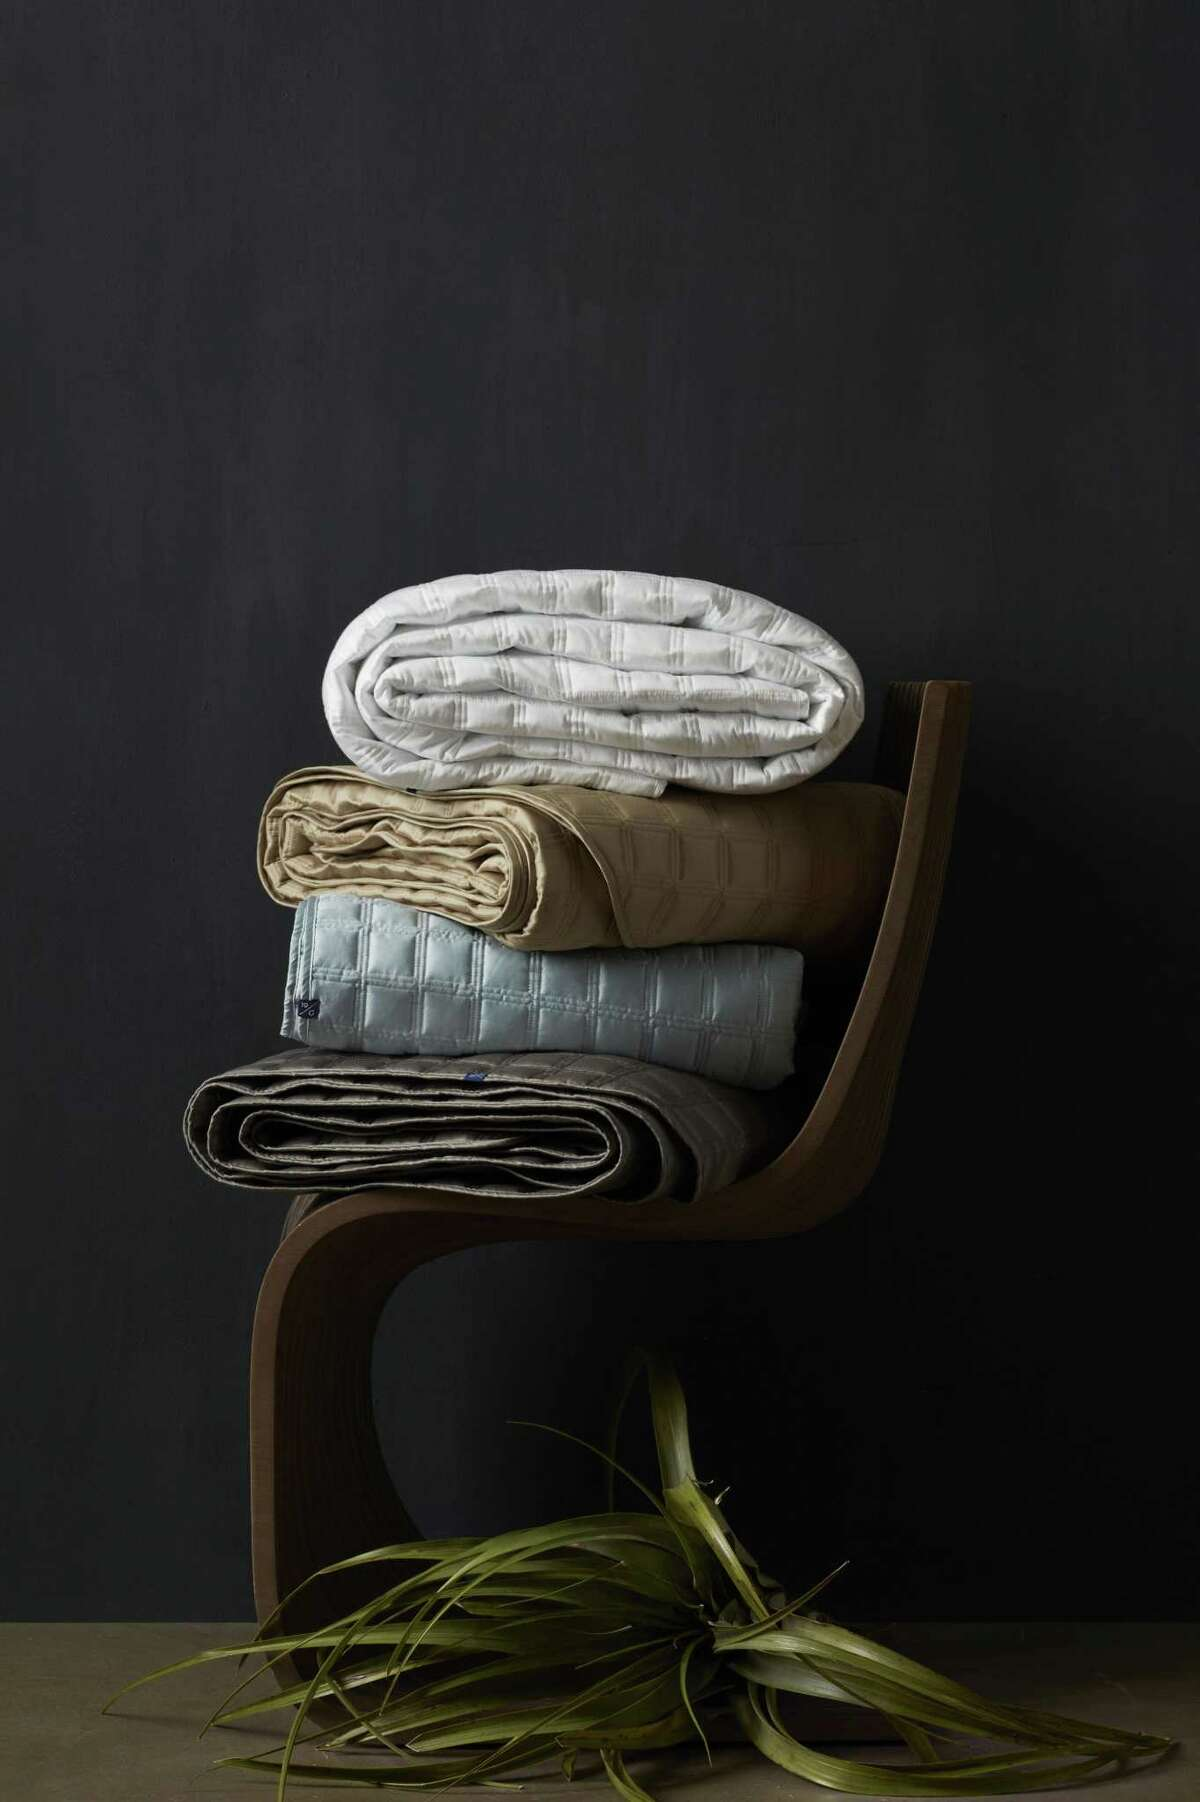 Coverlets are just one product made in 10 Grove's Houston workroom.